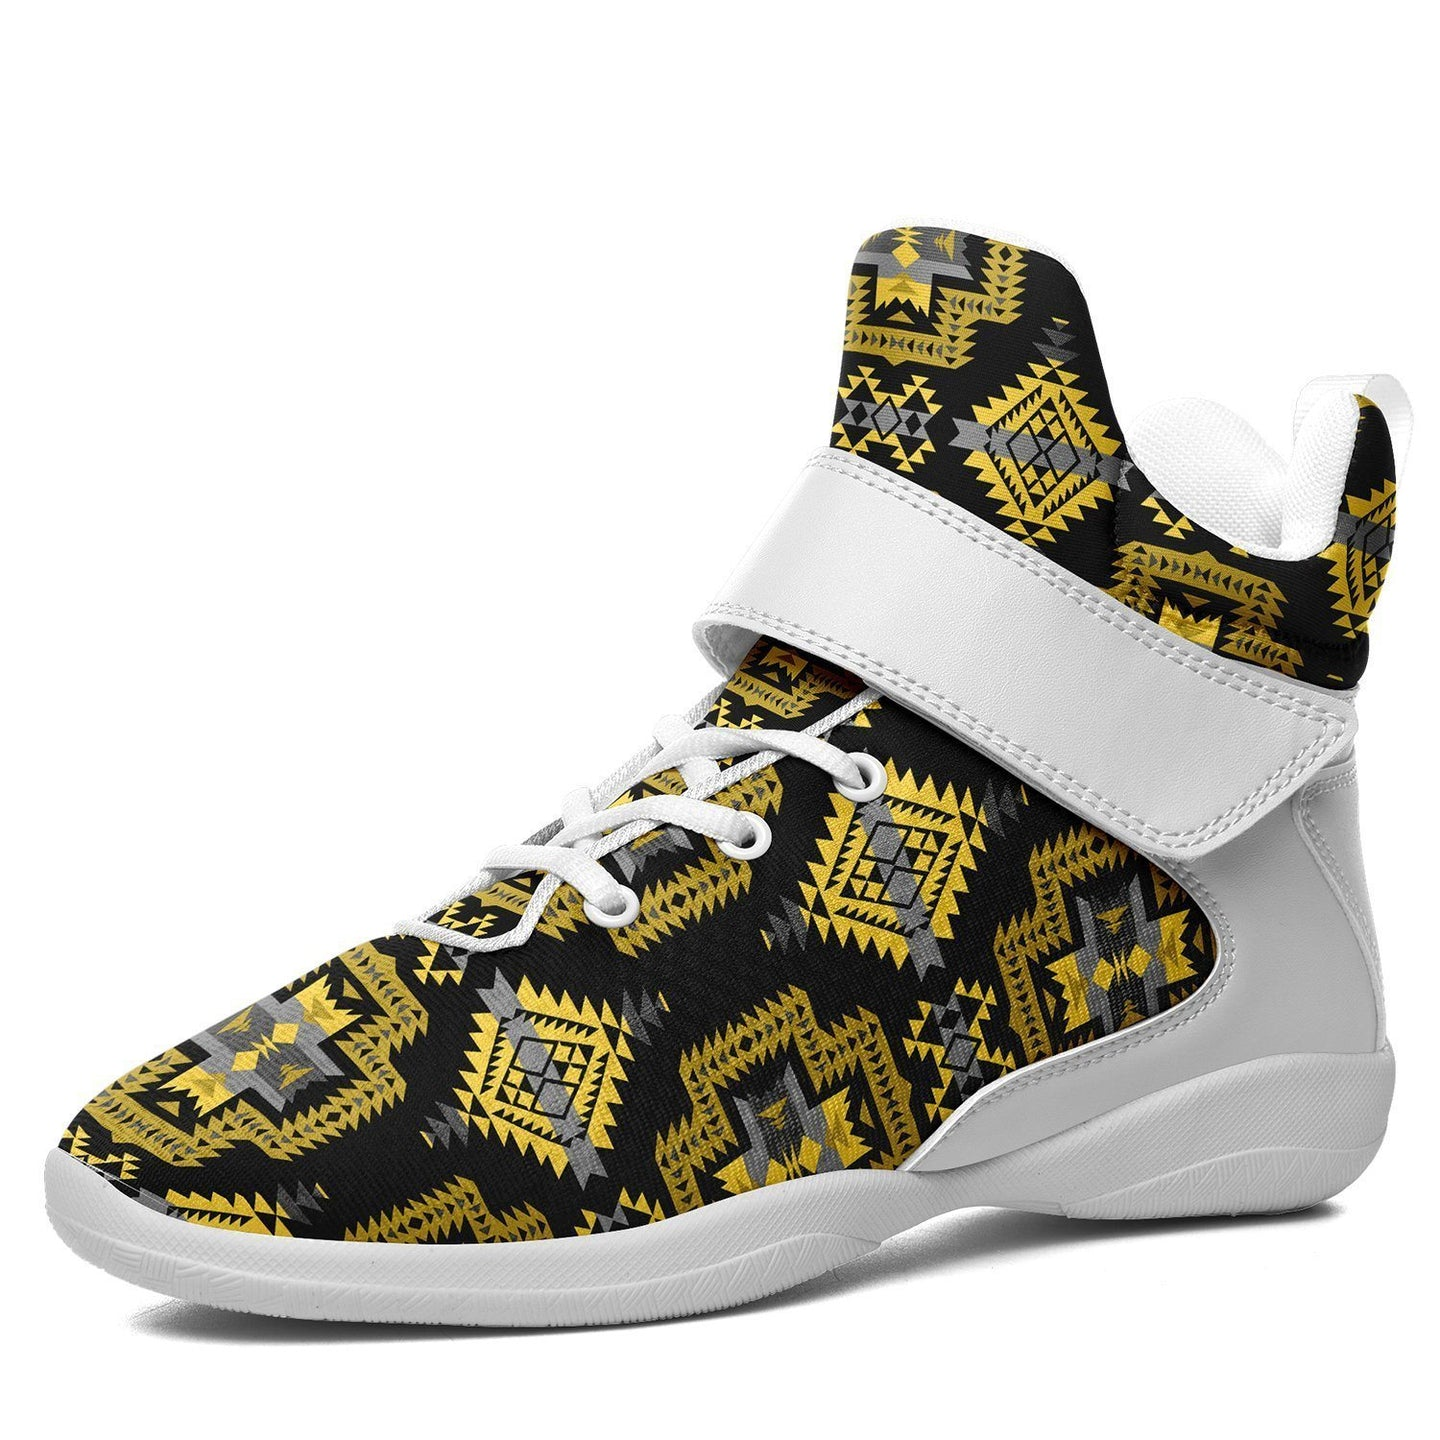 Pretty Blanket Yellow Ocre Kid's Ipottaa Basketball / Sport High Top Shoes 49 Dzine US Child 12.5 / EUR 30 White Sole with White Strap